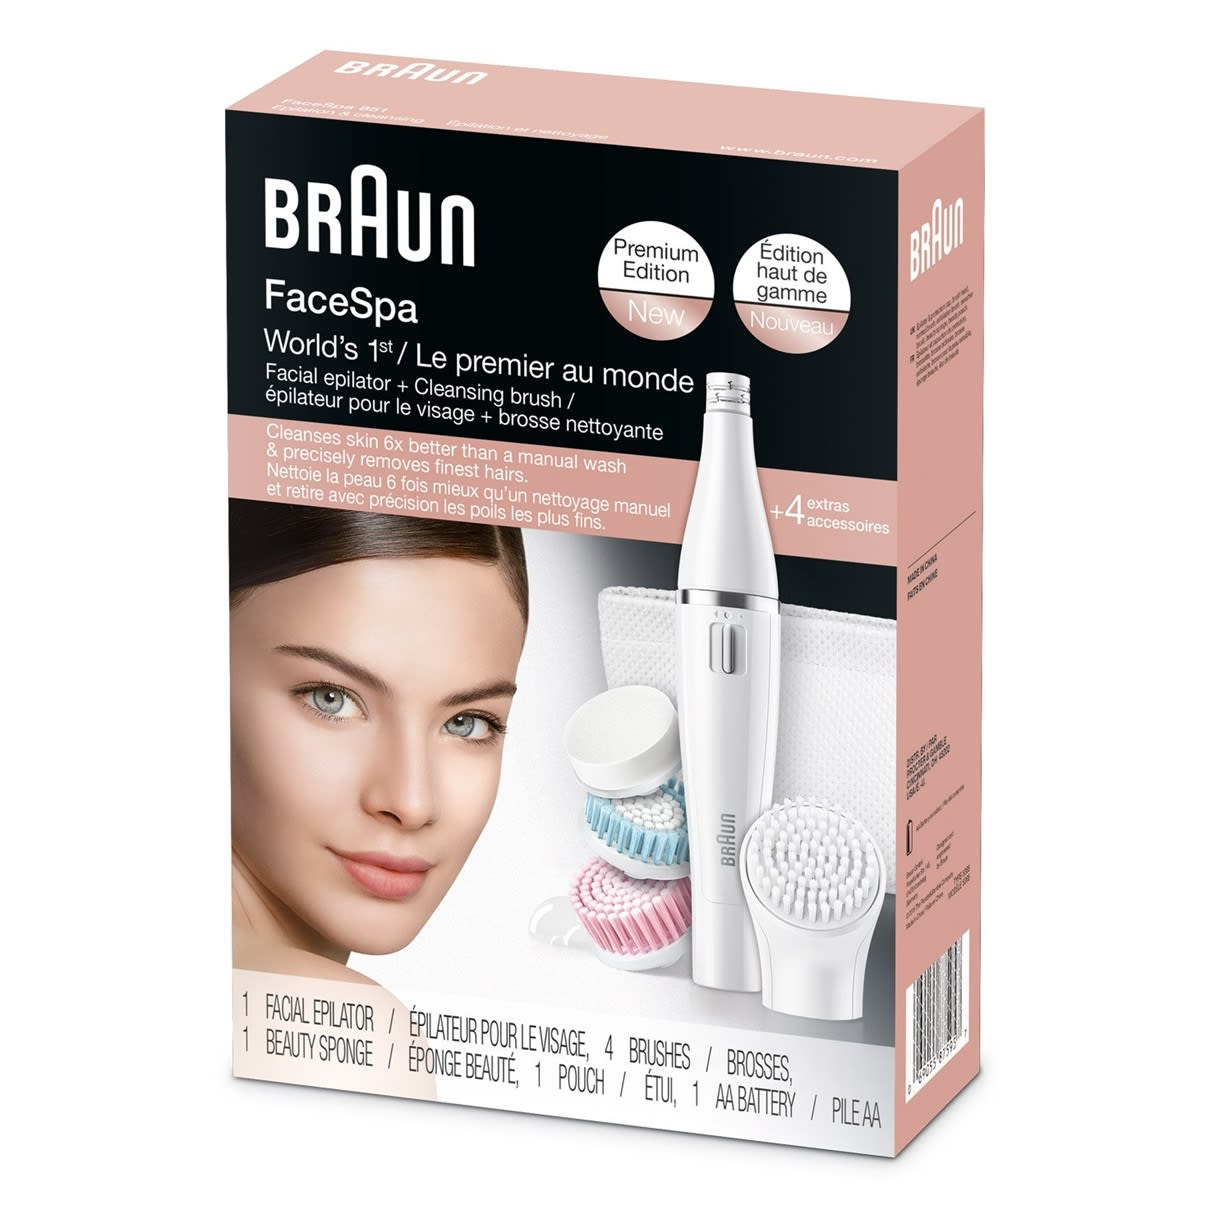 Braun Face 851 Epilator Facial Cleansing Brush